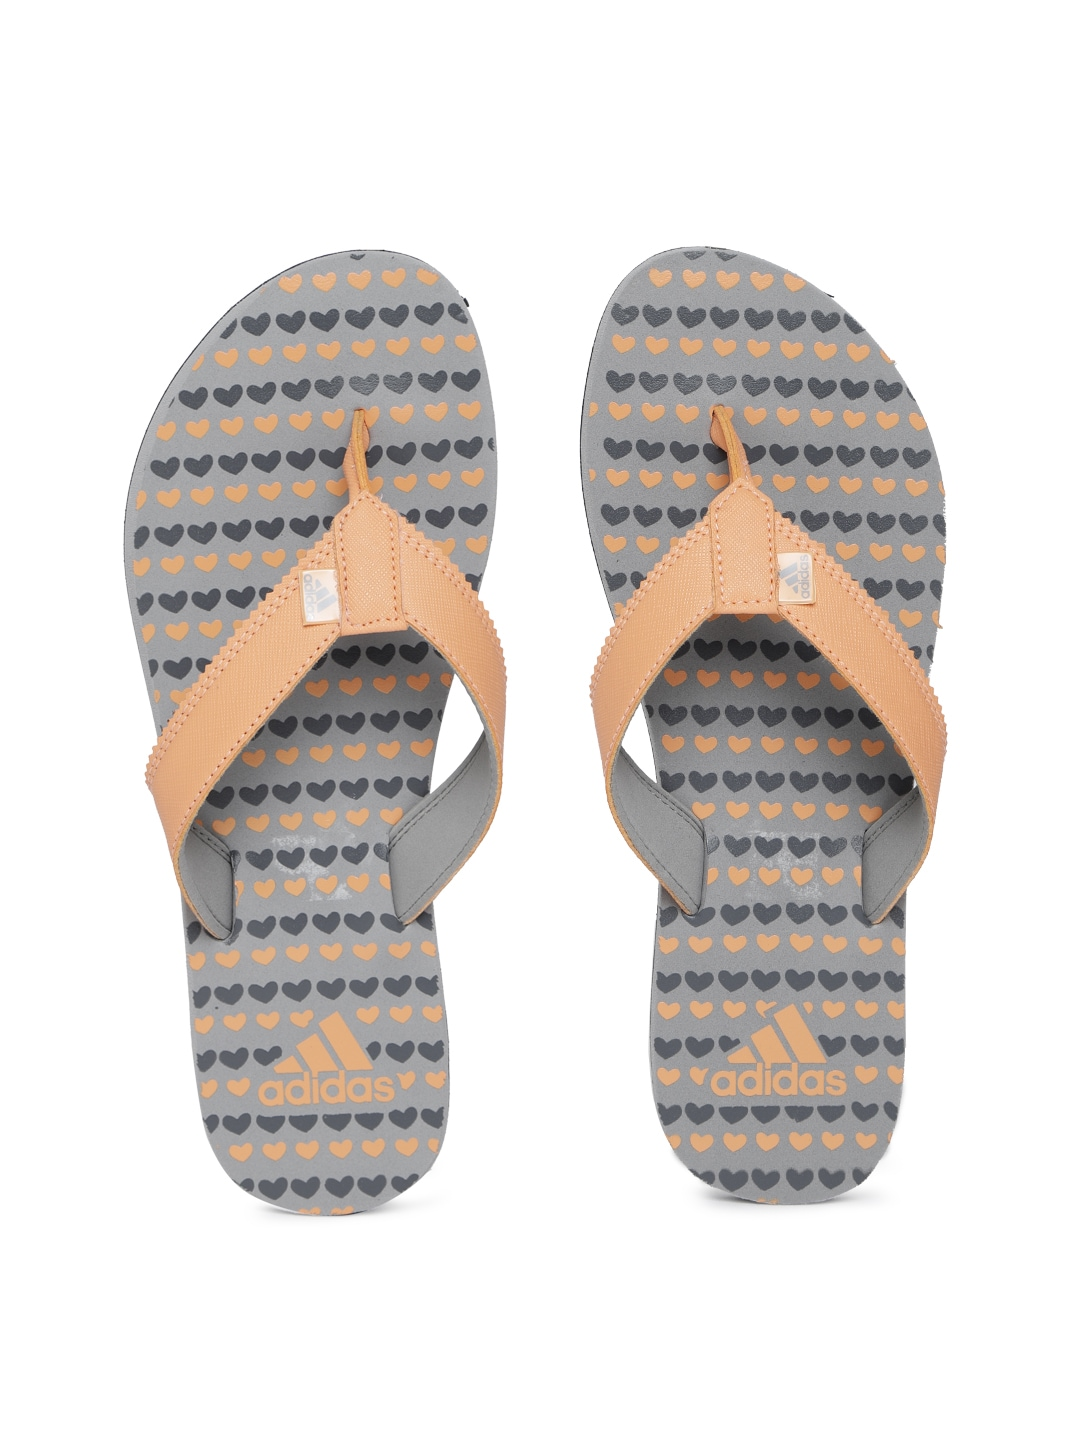 Adidas Slippers - Buy Adidas Slipper   Flip Flops Online India a721e0418c